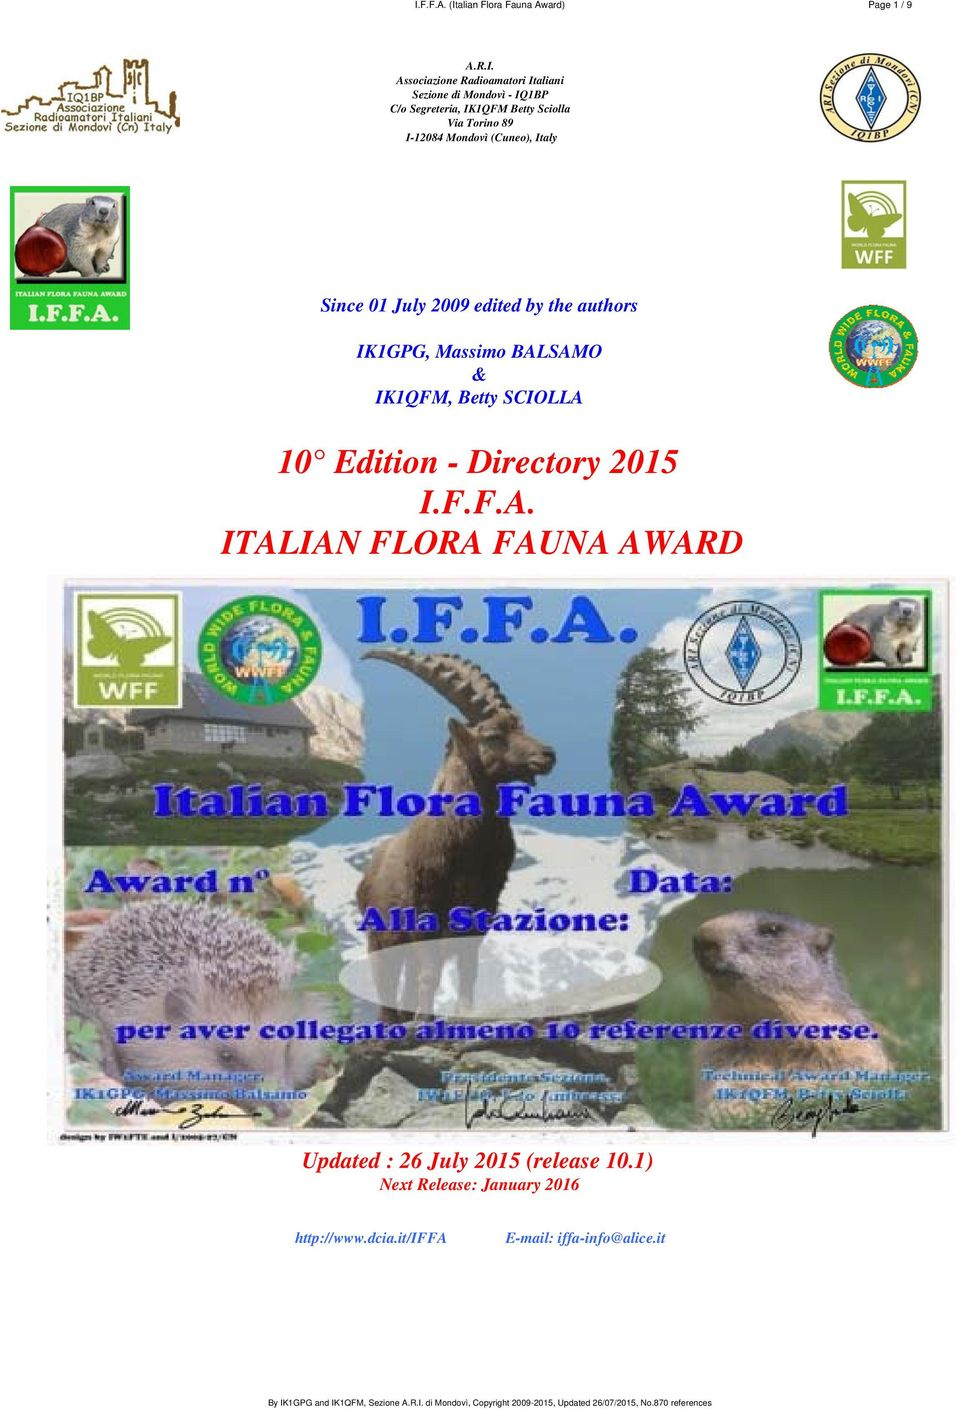 authors IK1GPG, Massimo BALSAMO & IK1QFM, Betty SCIOLLA 10 Edition - Directory 2015 I.F.F.A. ITALIAN FLORA FAUNA AWARD Updated : 26 July 2015 (release 10.